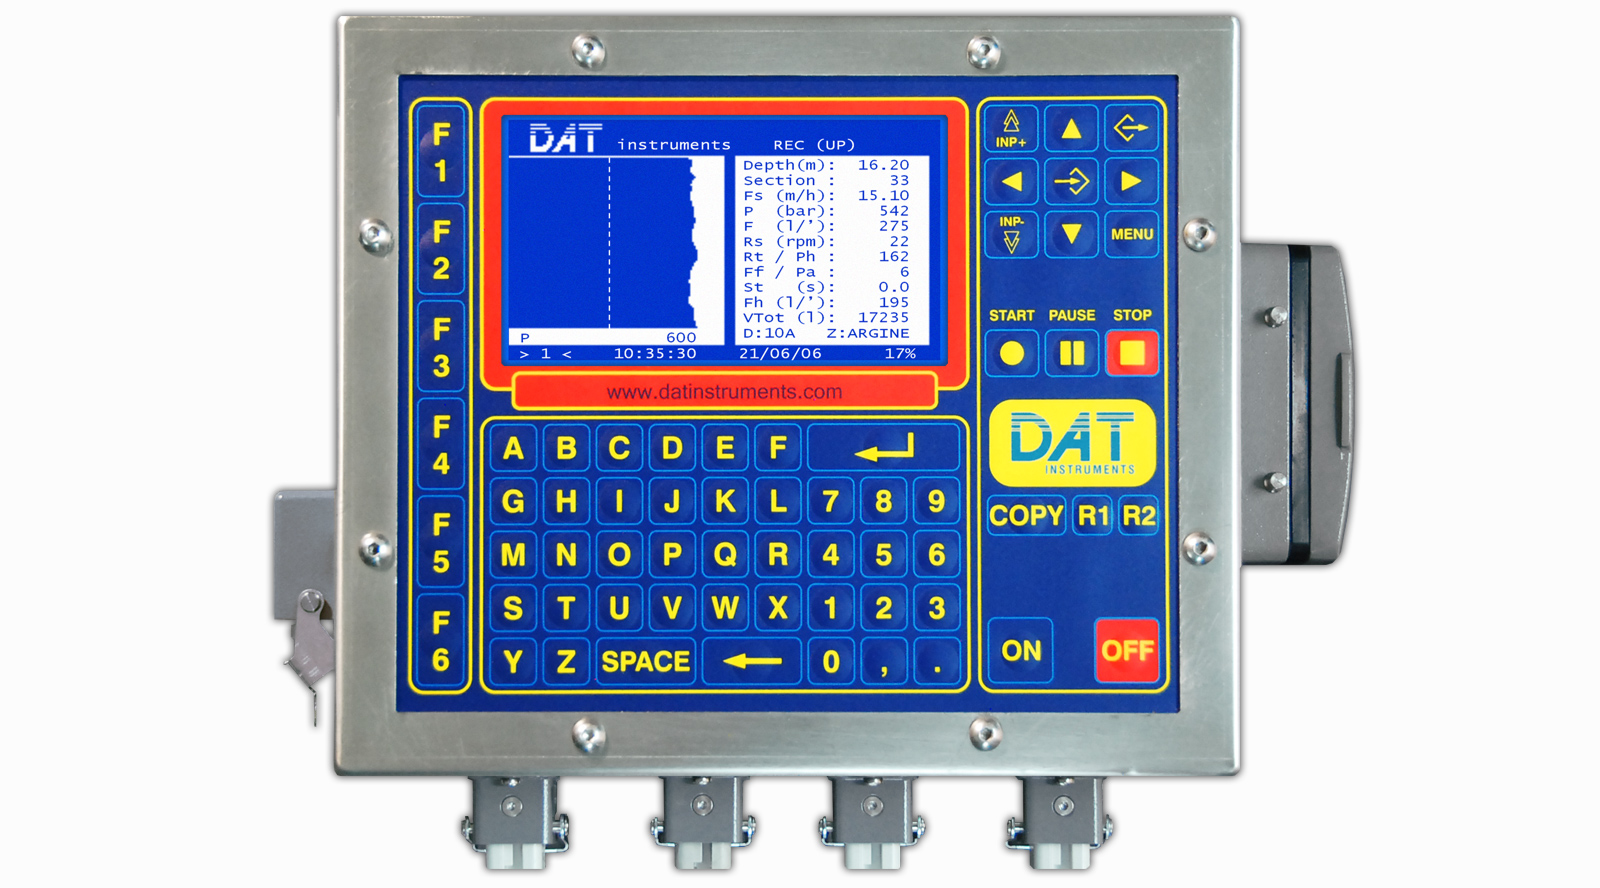 DAT instruments, JET 4000 AME / J datalogger, instrumentation, sensors, geotechnical, digitalization, certification, data logger for drilling and MWD